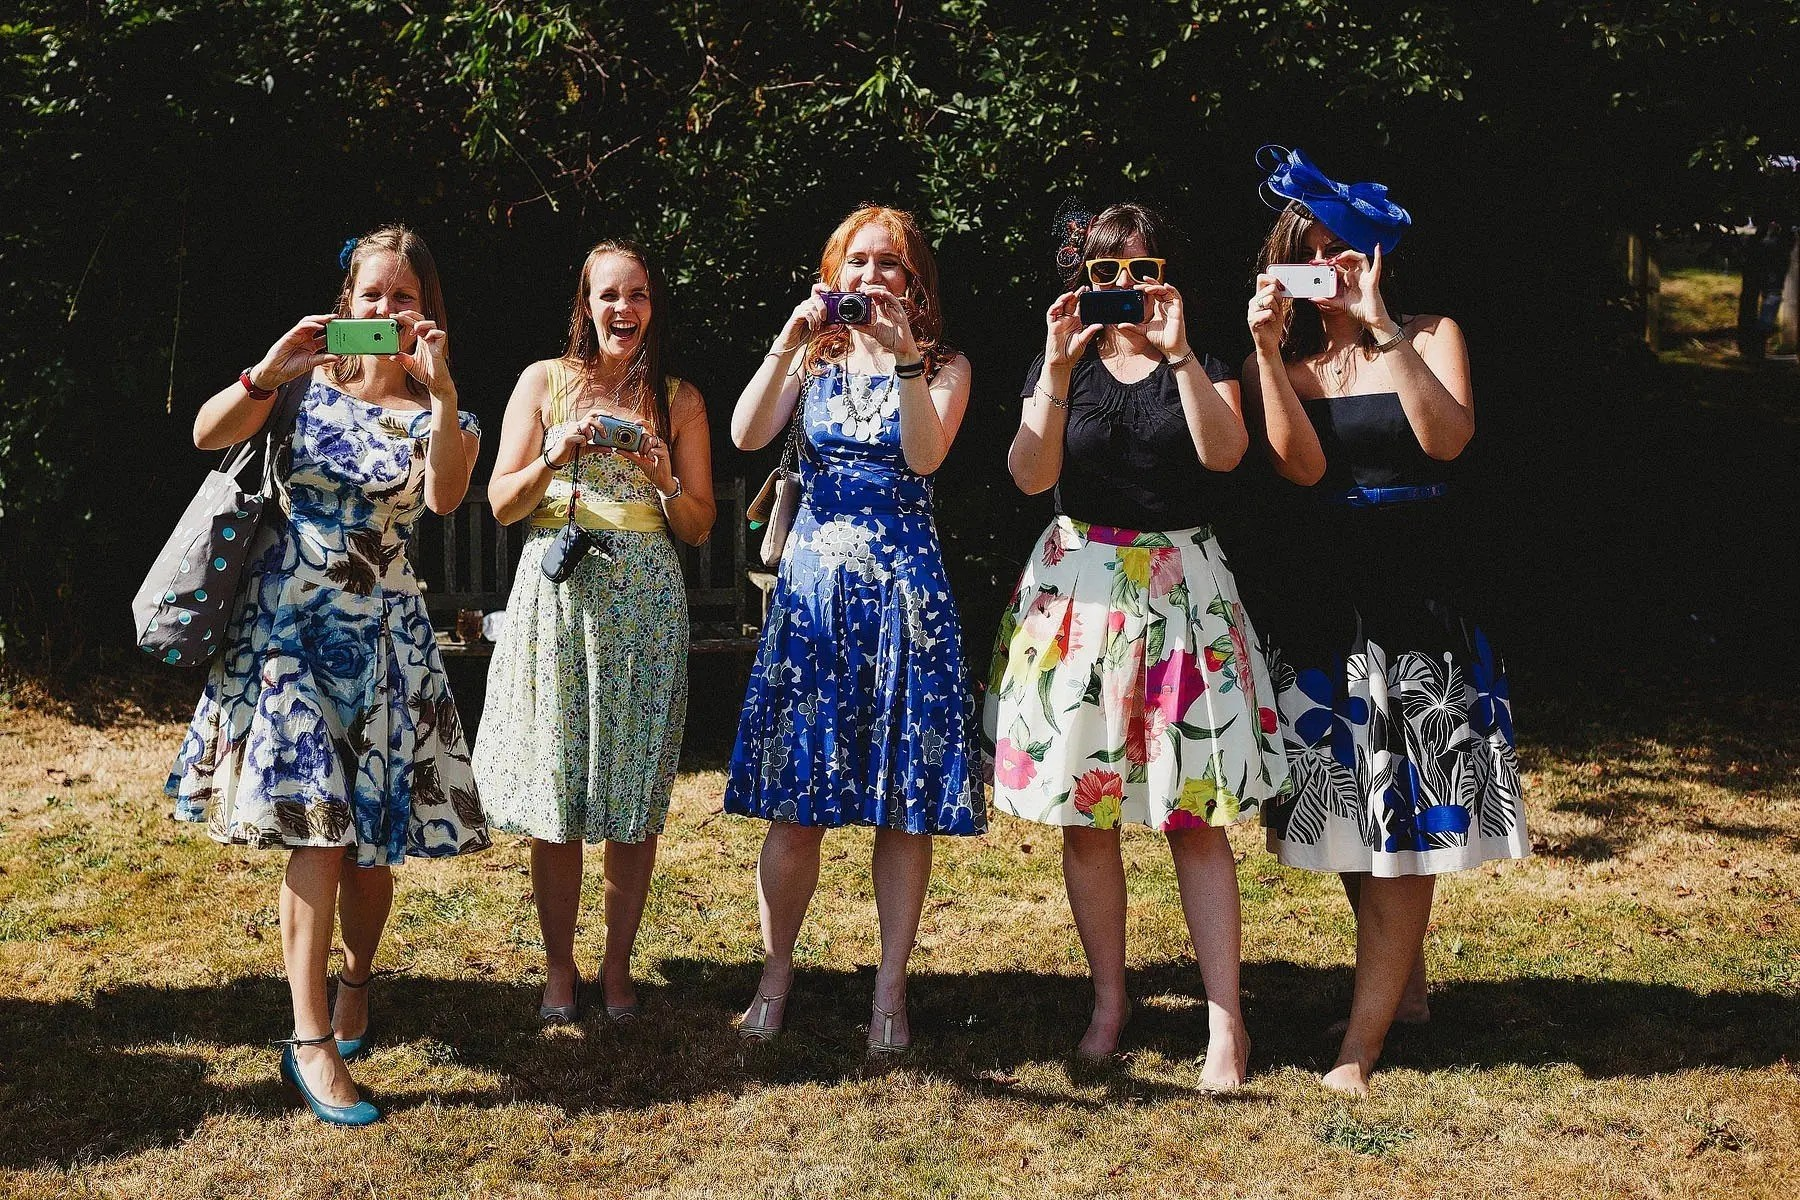 girls taking pictures at a wedding